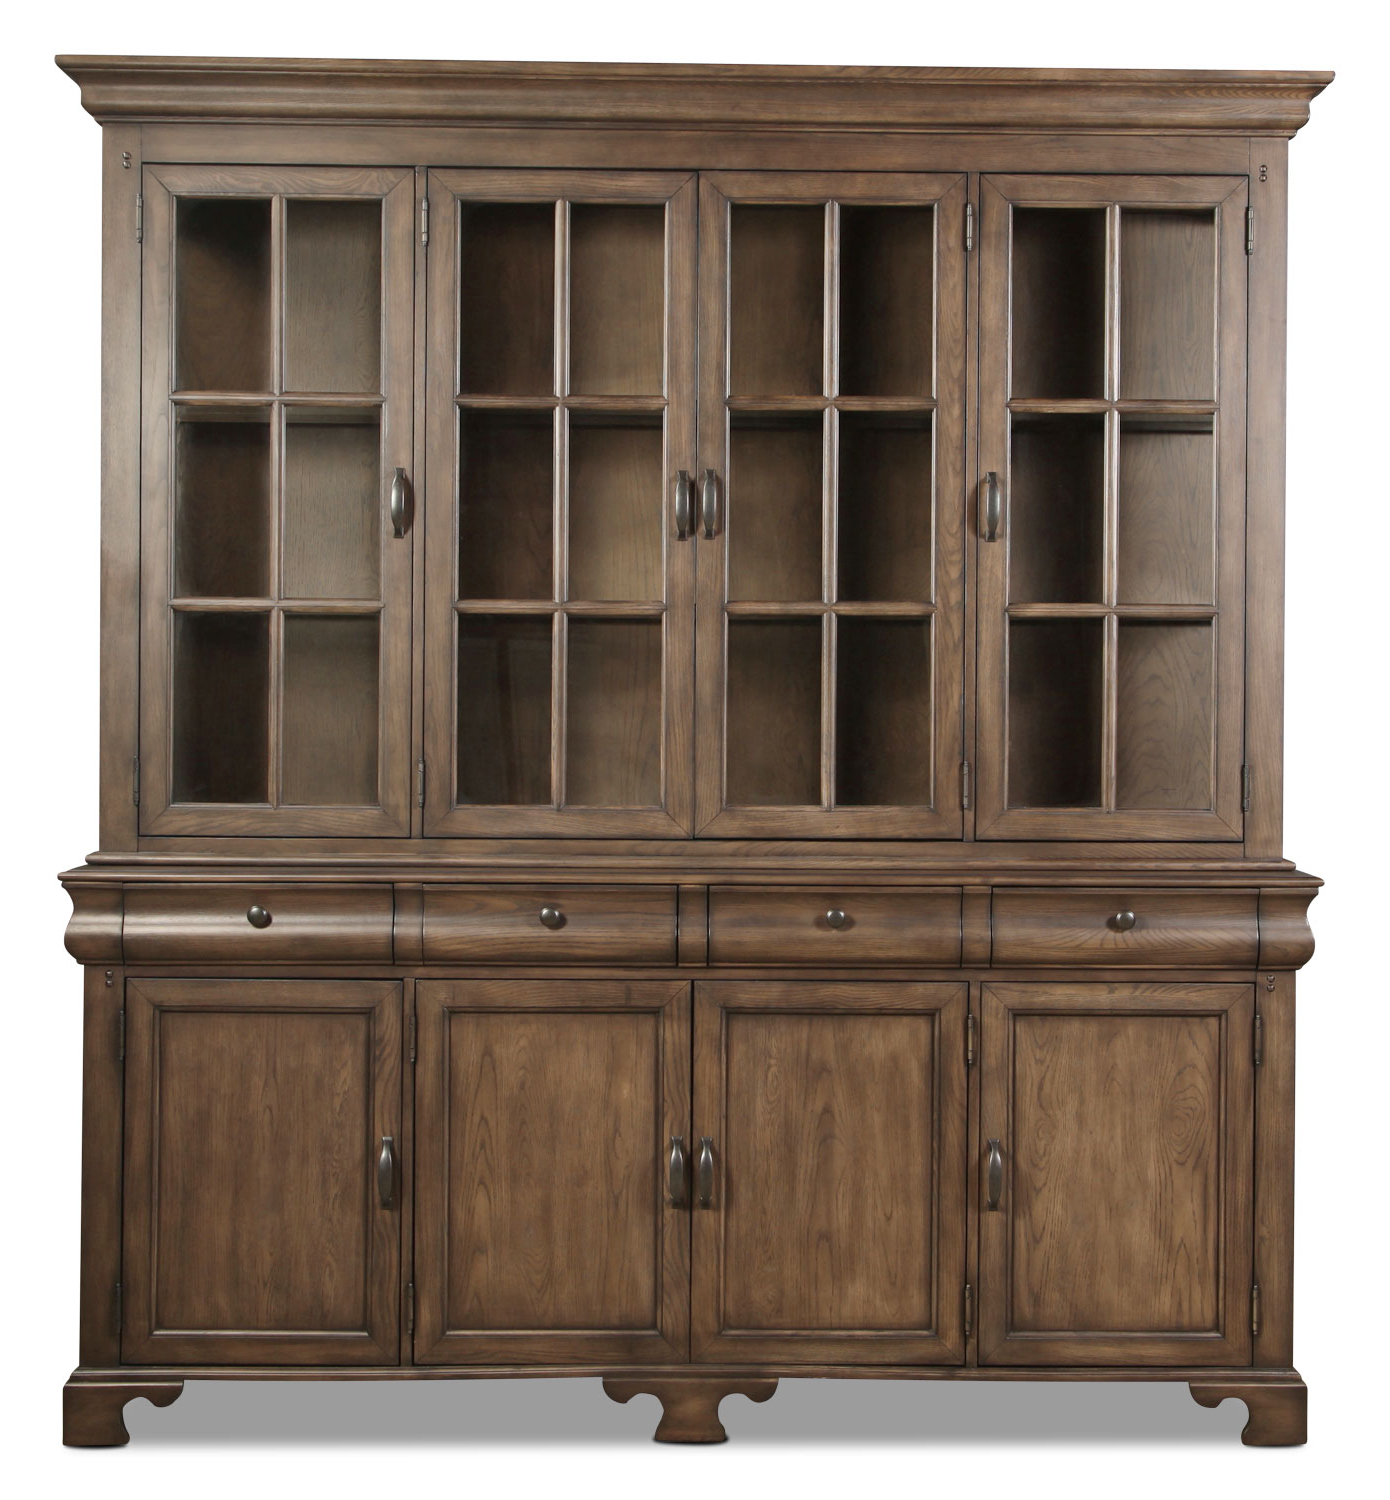 Most Popular Leven Wine Sideboards For Cabinets & Storage (View 5 of 20)